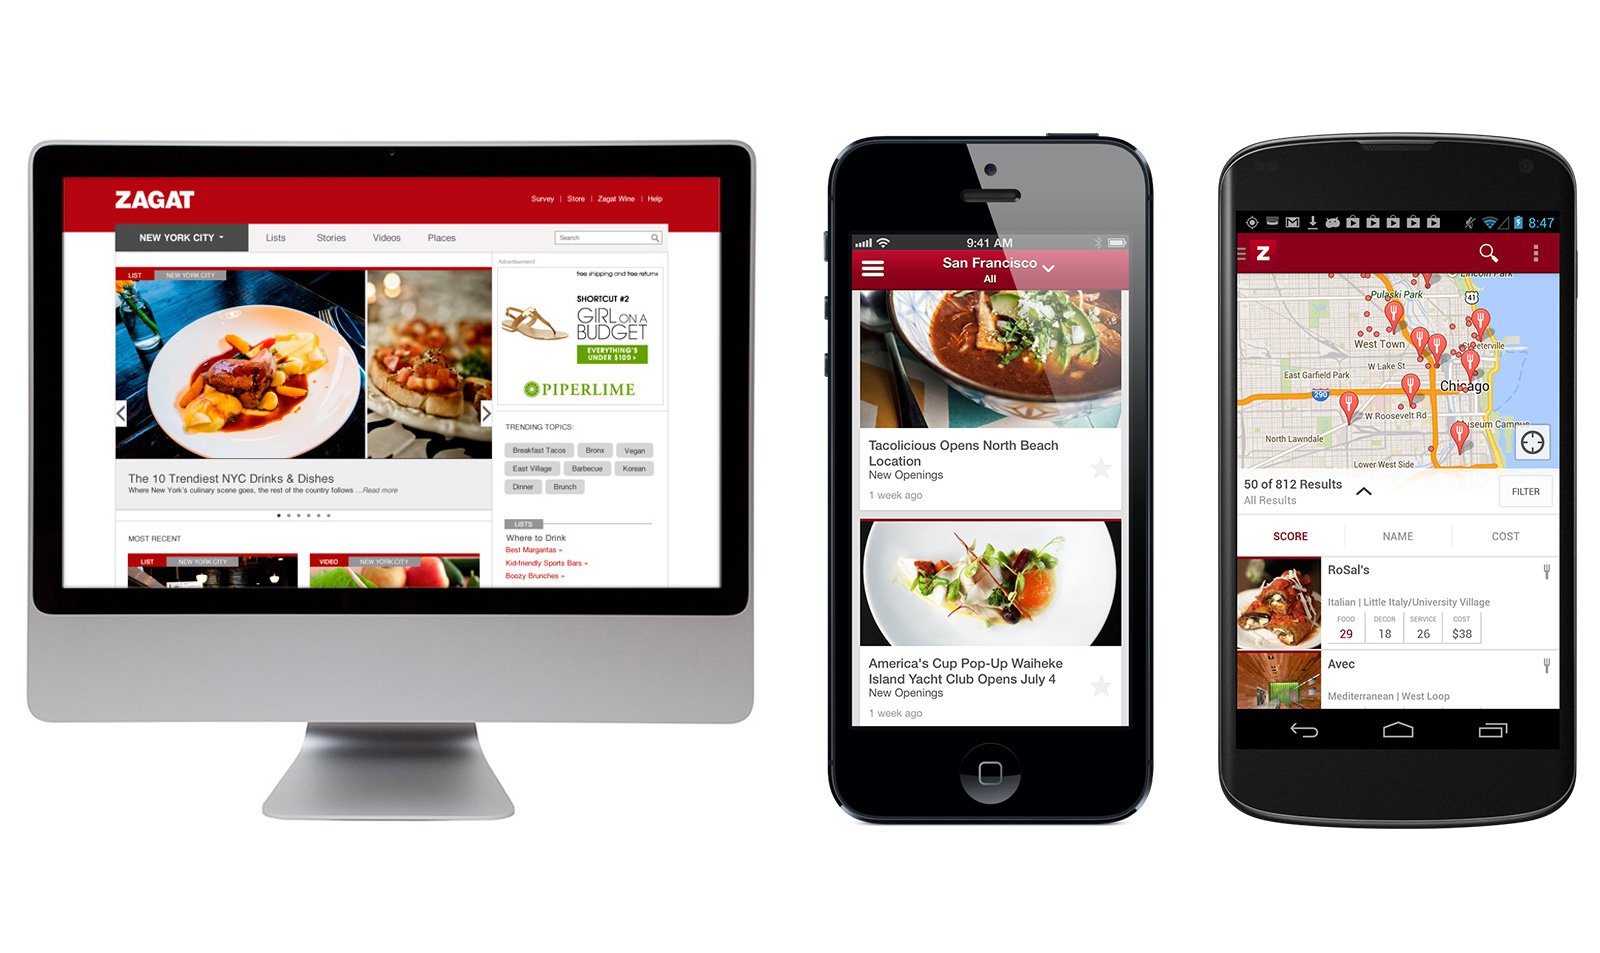 Google relaunches zagat s website and mobile apps no